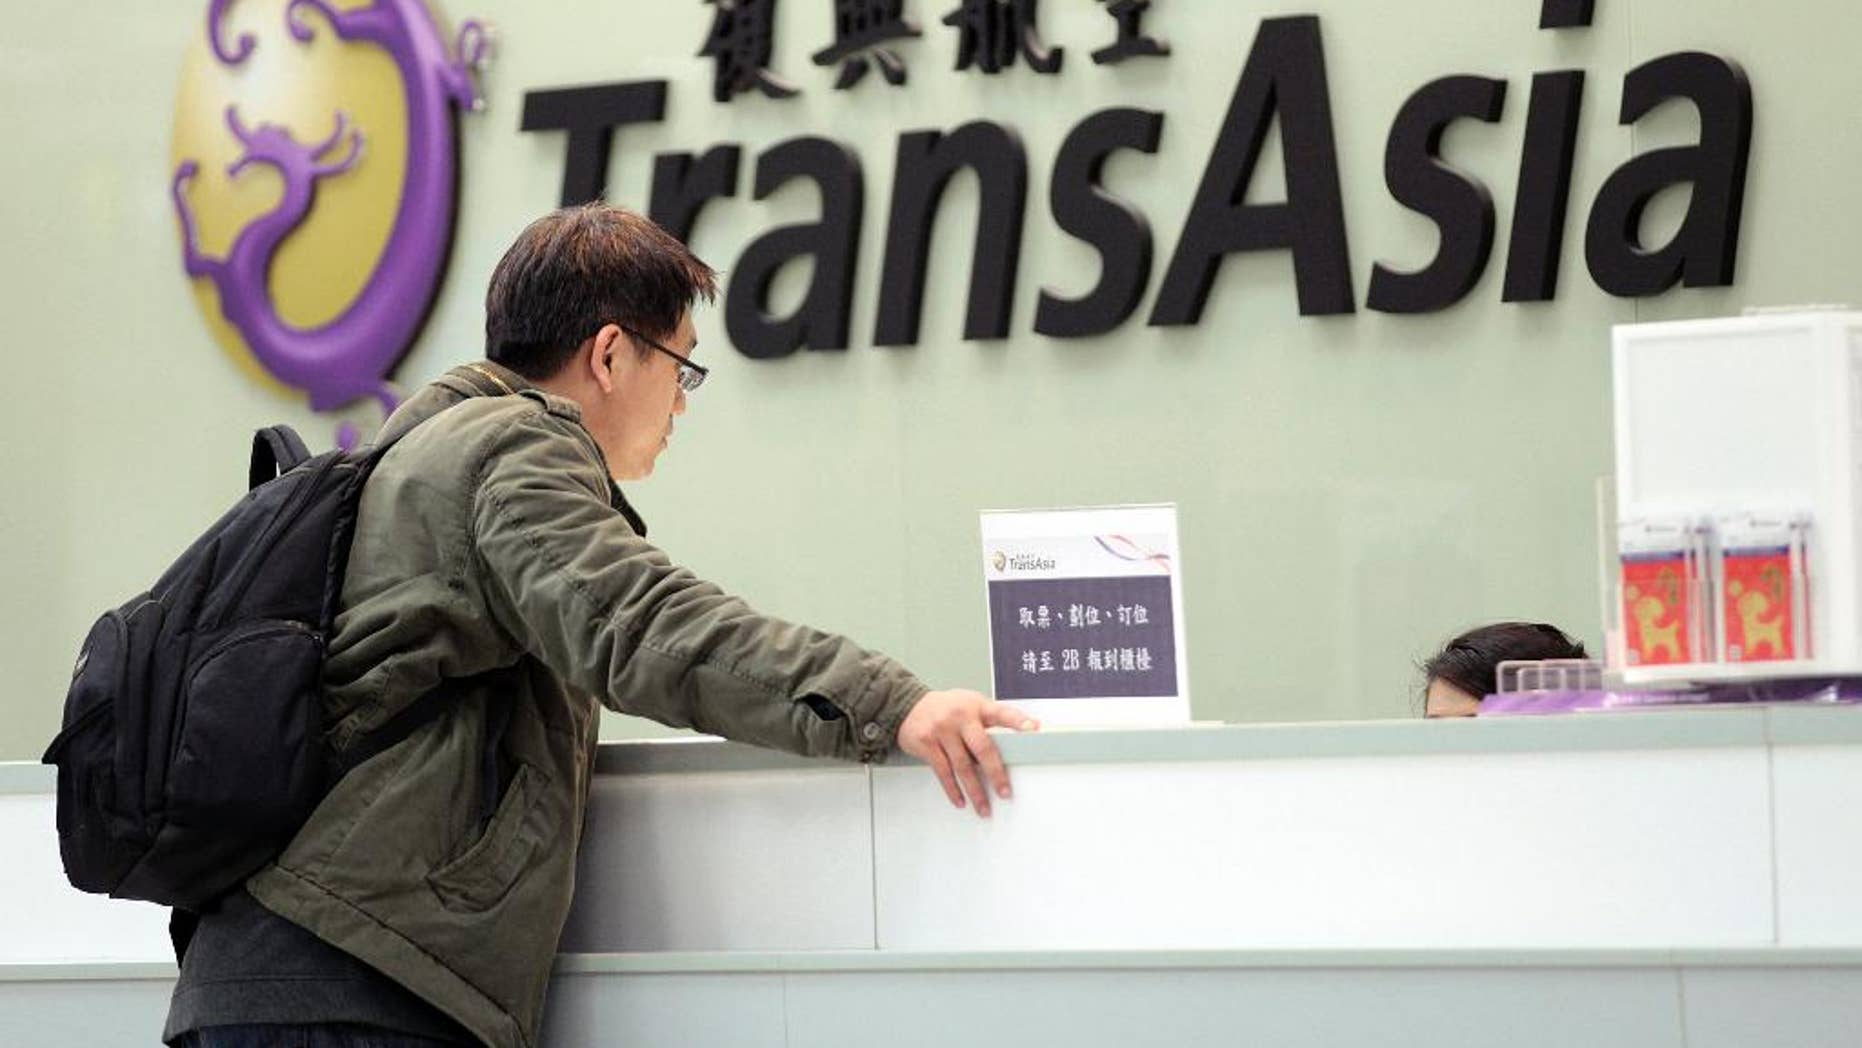 FILE- In this Saturday, Feb. 7, 2015, file photo, a passenger waits at the ticket counter of TransAsia Airways at the Songshan Airport in Taipei, Taiwan. Taiwanese airline TransAsia has announced it is shutting down following financial losses and two fatal crashes. TransAsia chairman Vincent Lin said Tuesday the airline, which served cities in China, Japan and Southeast Asia, was unable to reverse widening losses or raise additional money. (AP Photo/Wally Santana, File)